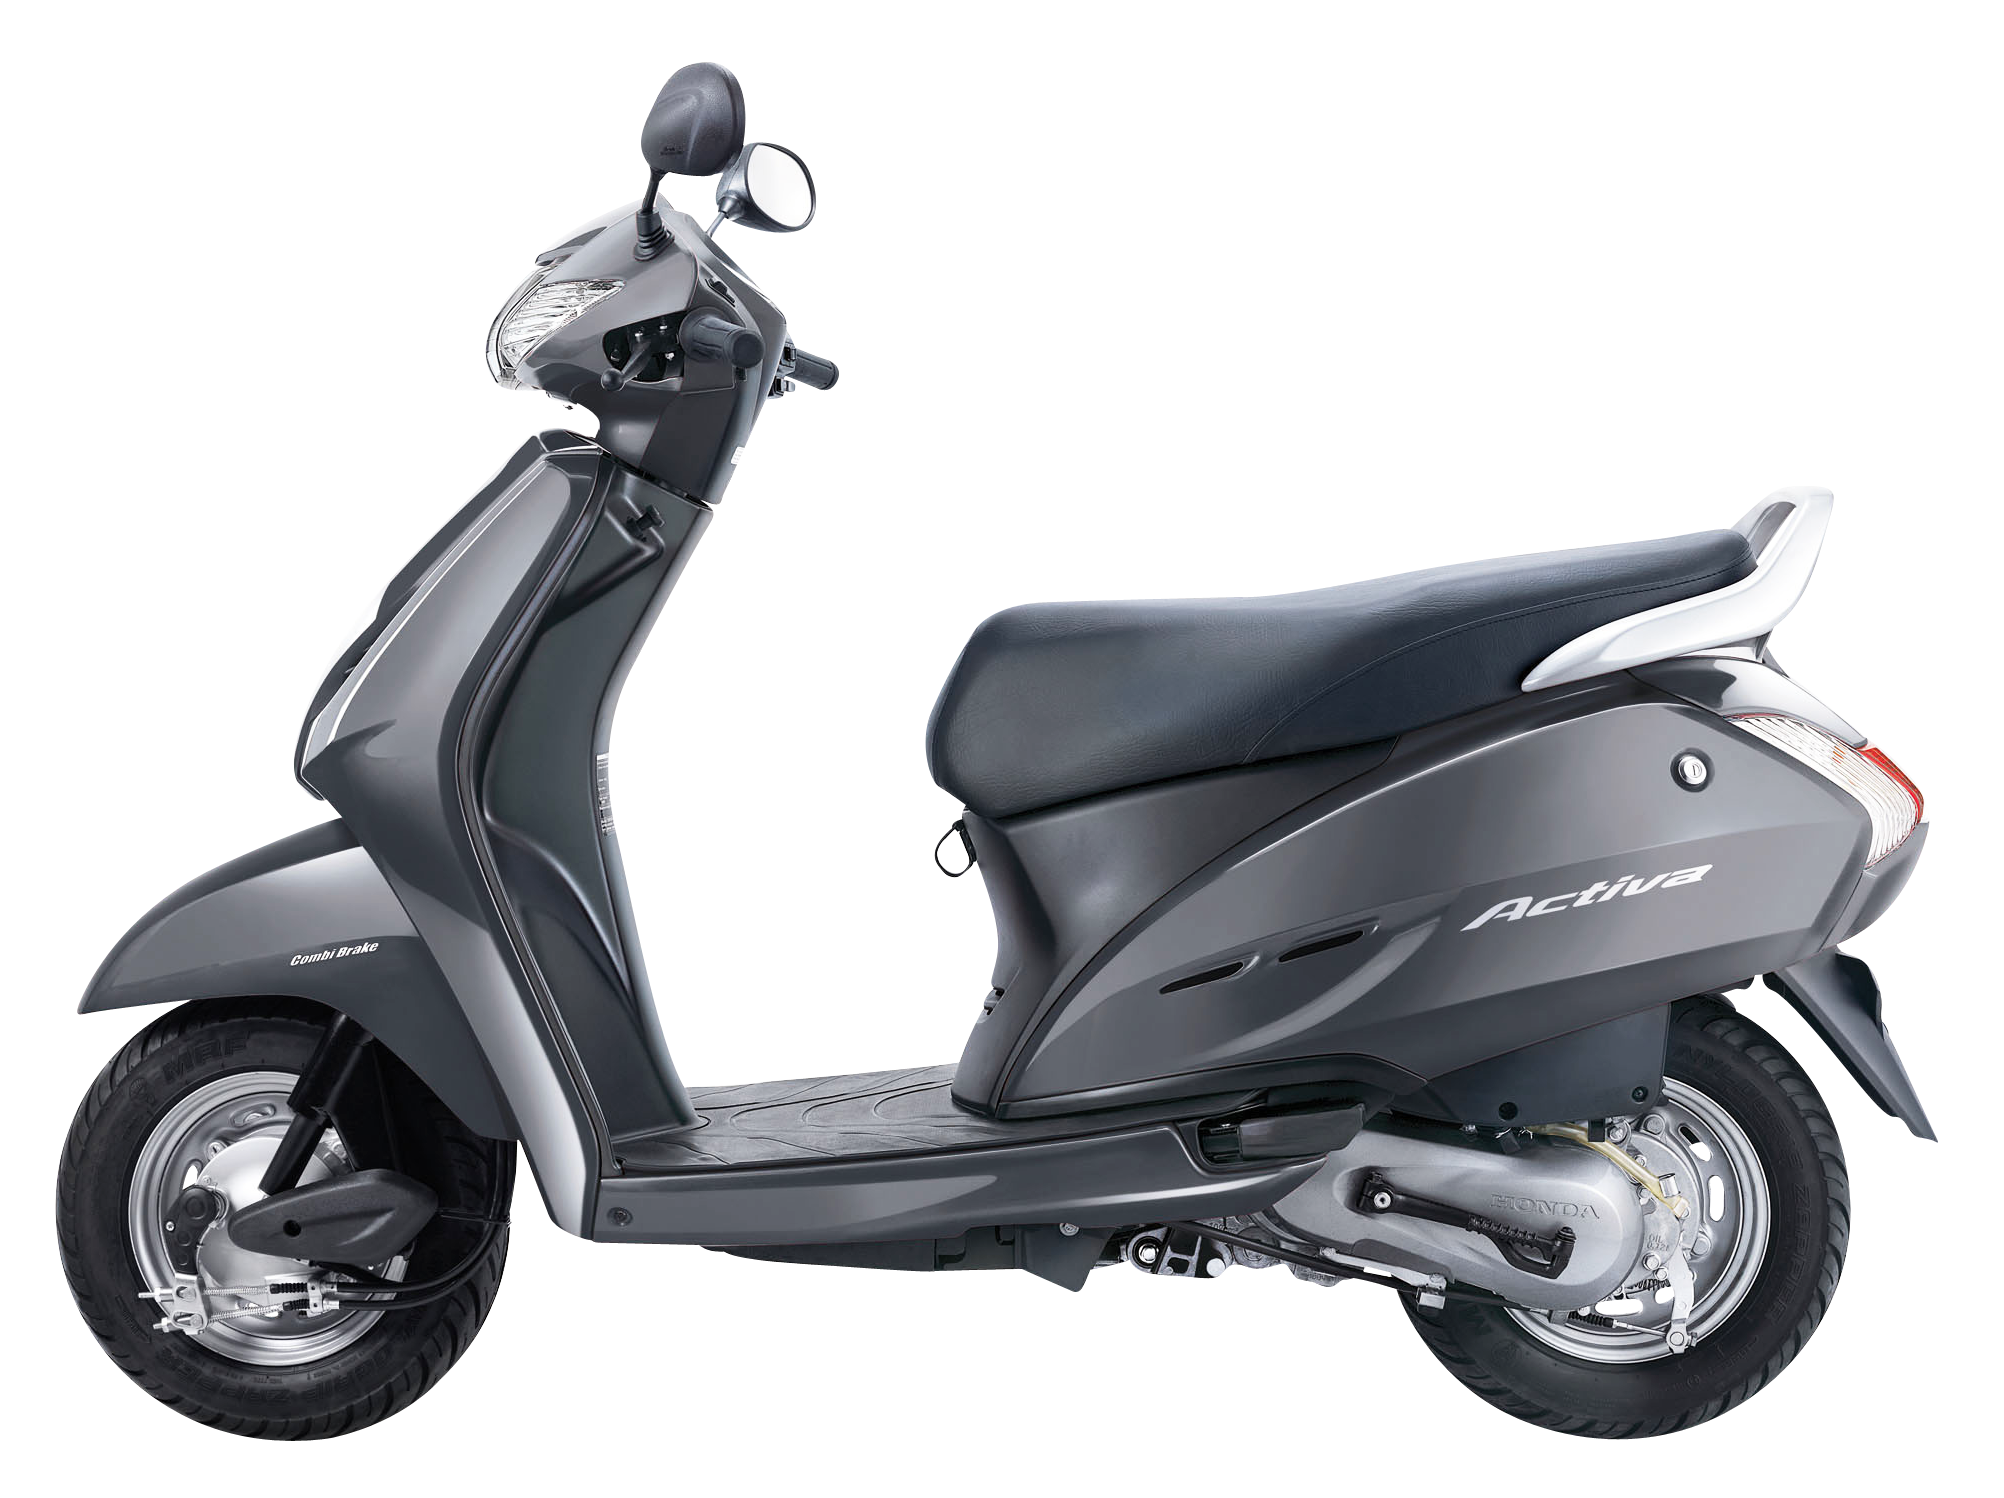 Honda Activa 3G Scooty PNG Image.